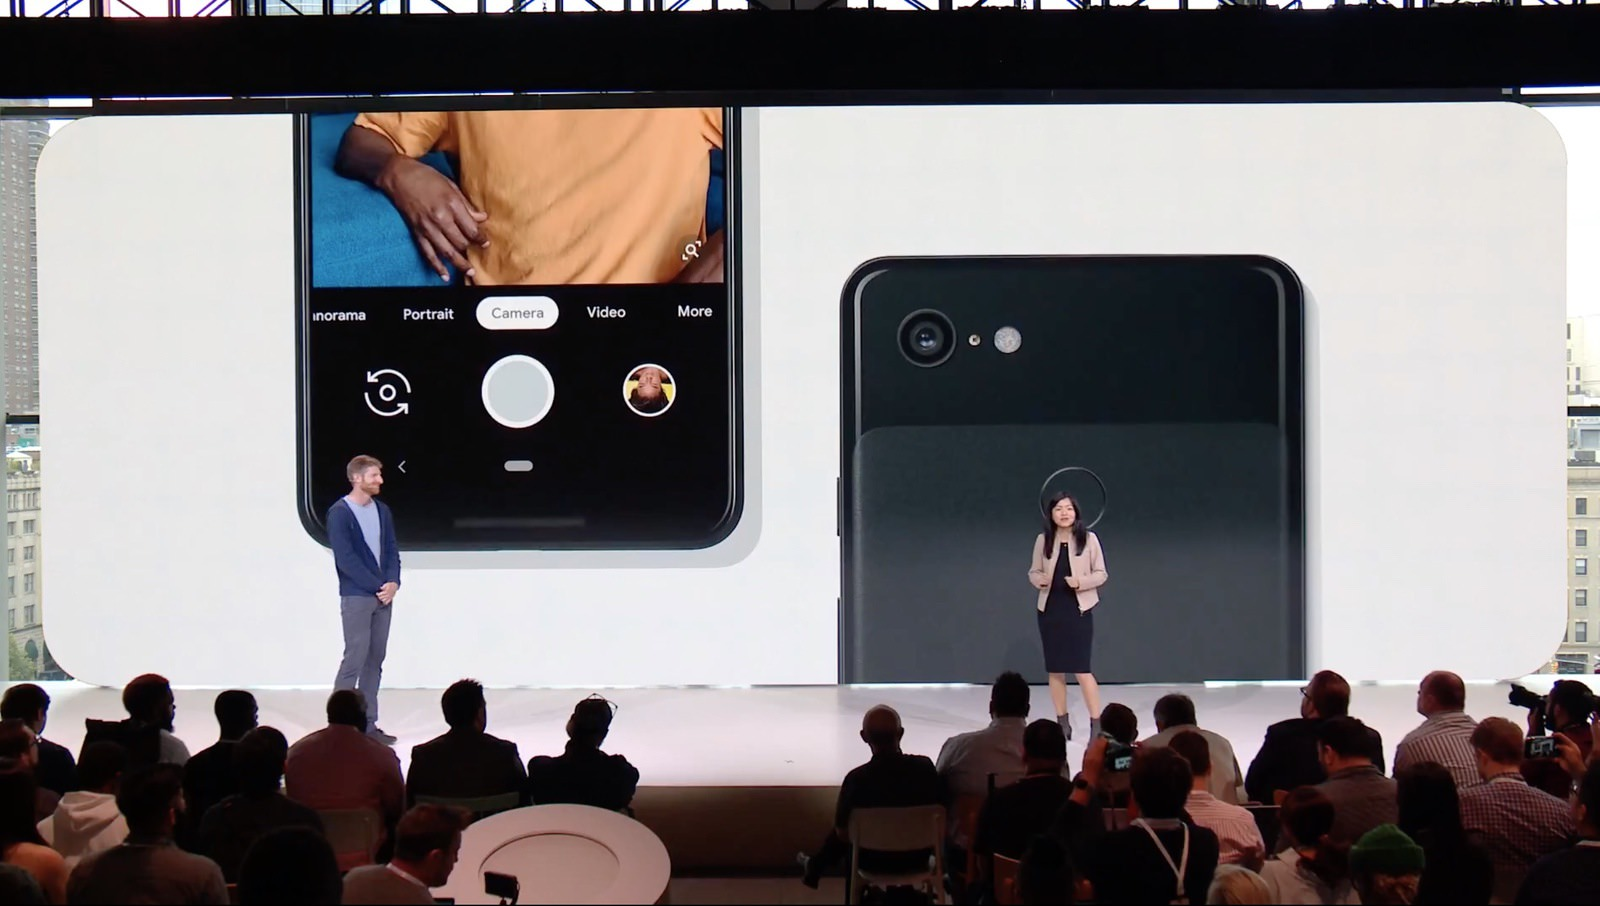 Google Pixel 3 Camera Features 10